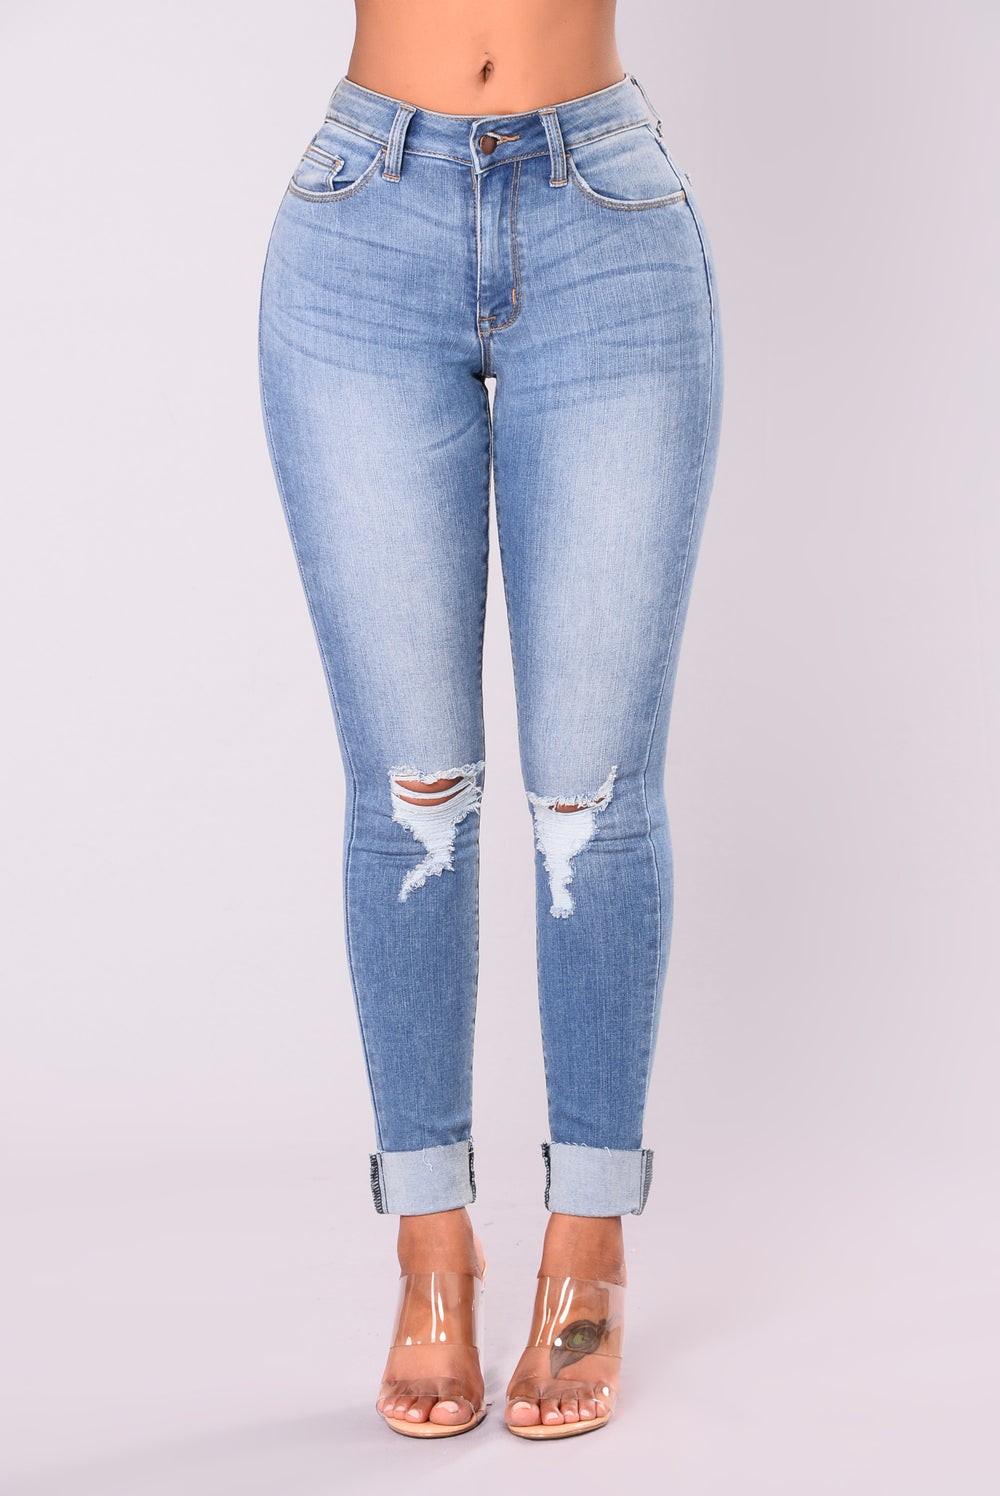 Sing The Blues Jeans - Medium Blue